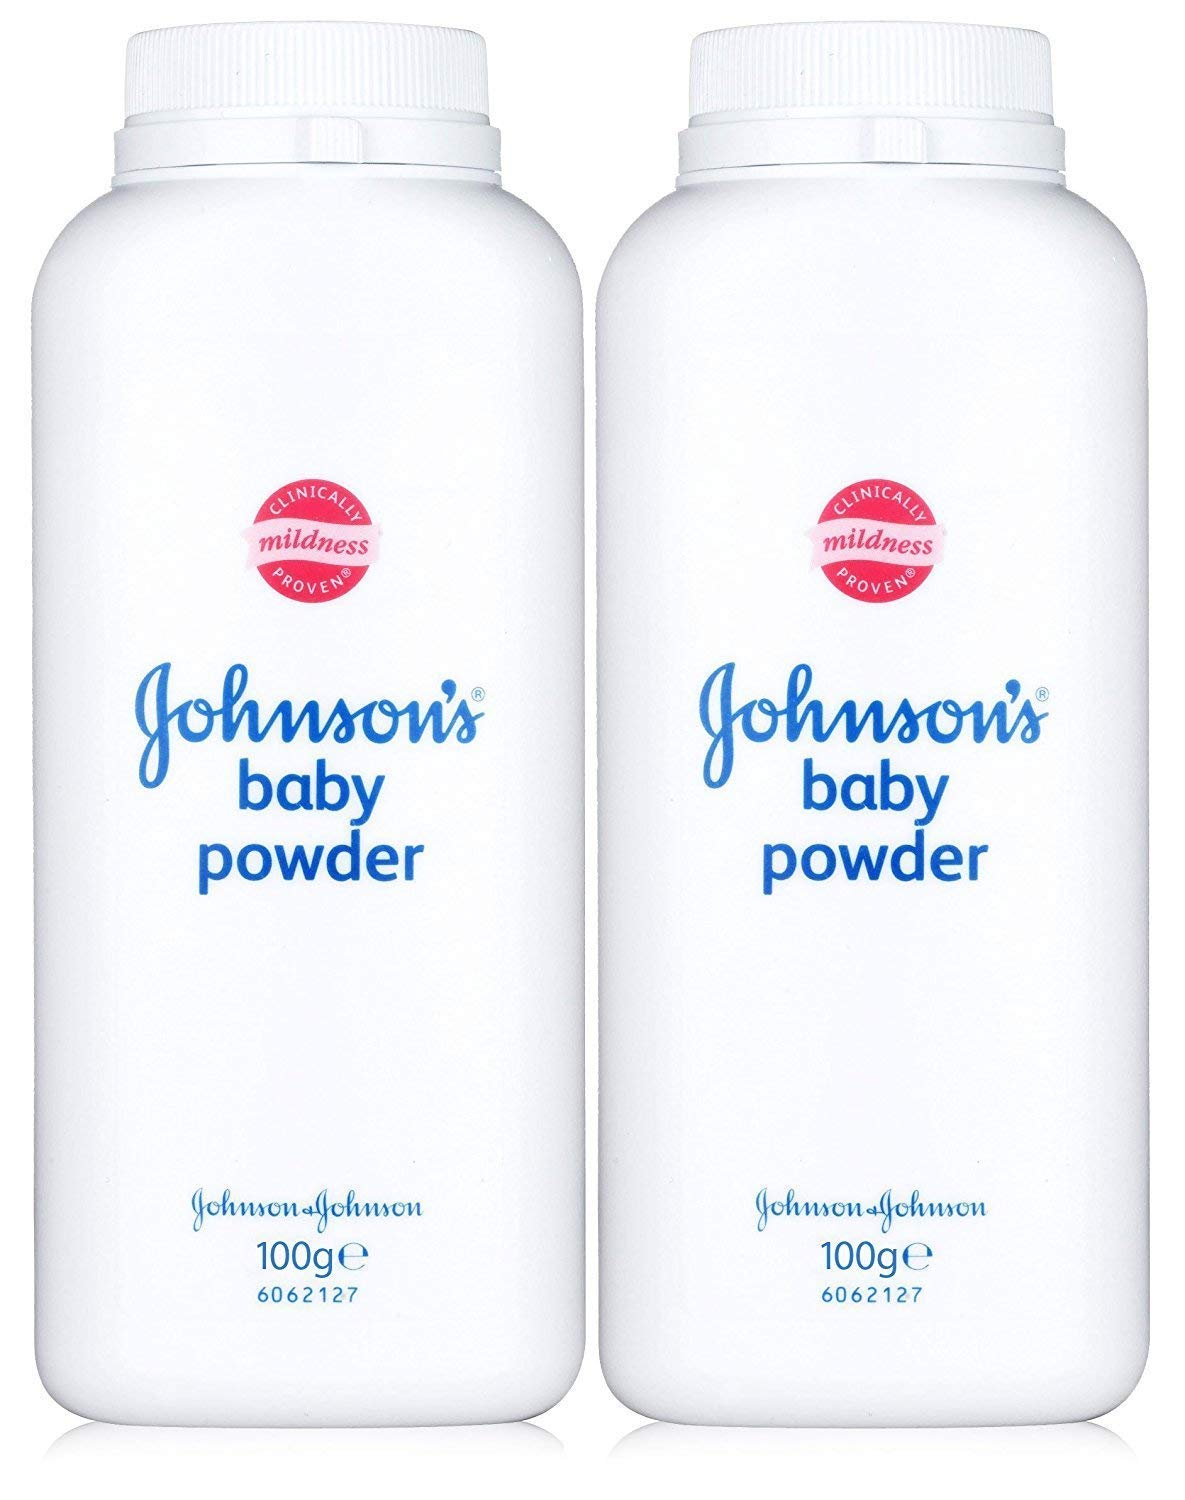 JOHNSON'S BABY POWDER ORIGINAL MINI 100G NEW -CLINICALLY TESTED MILD- UK SELLER Johnson's